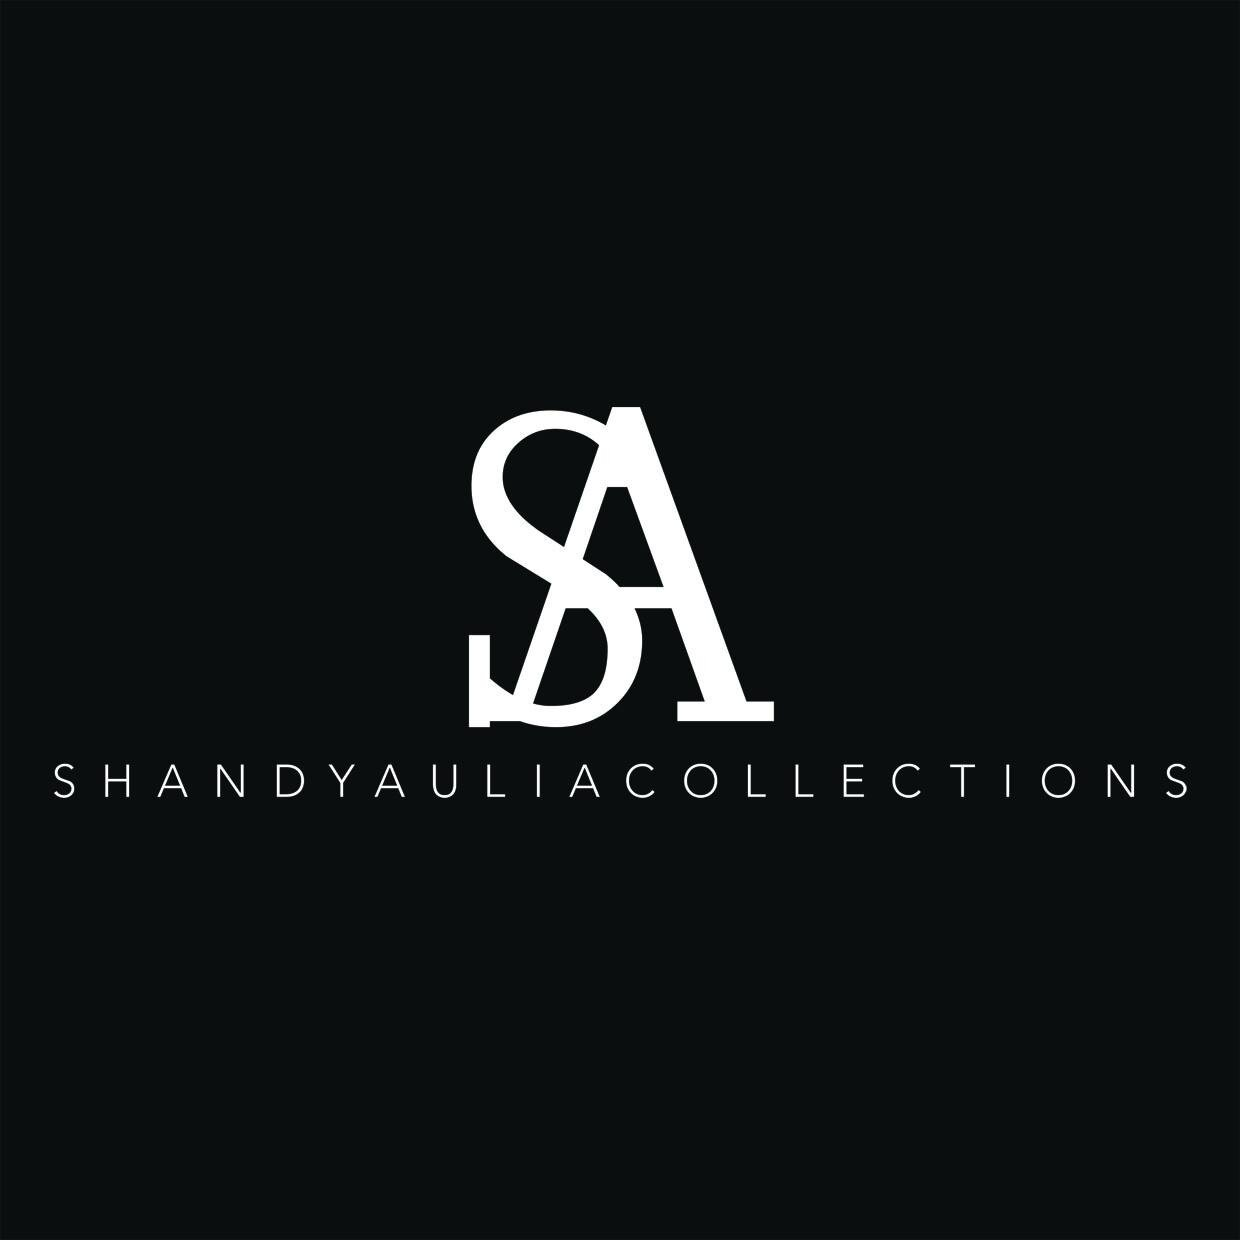 S. A. Collections